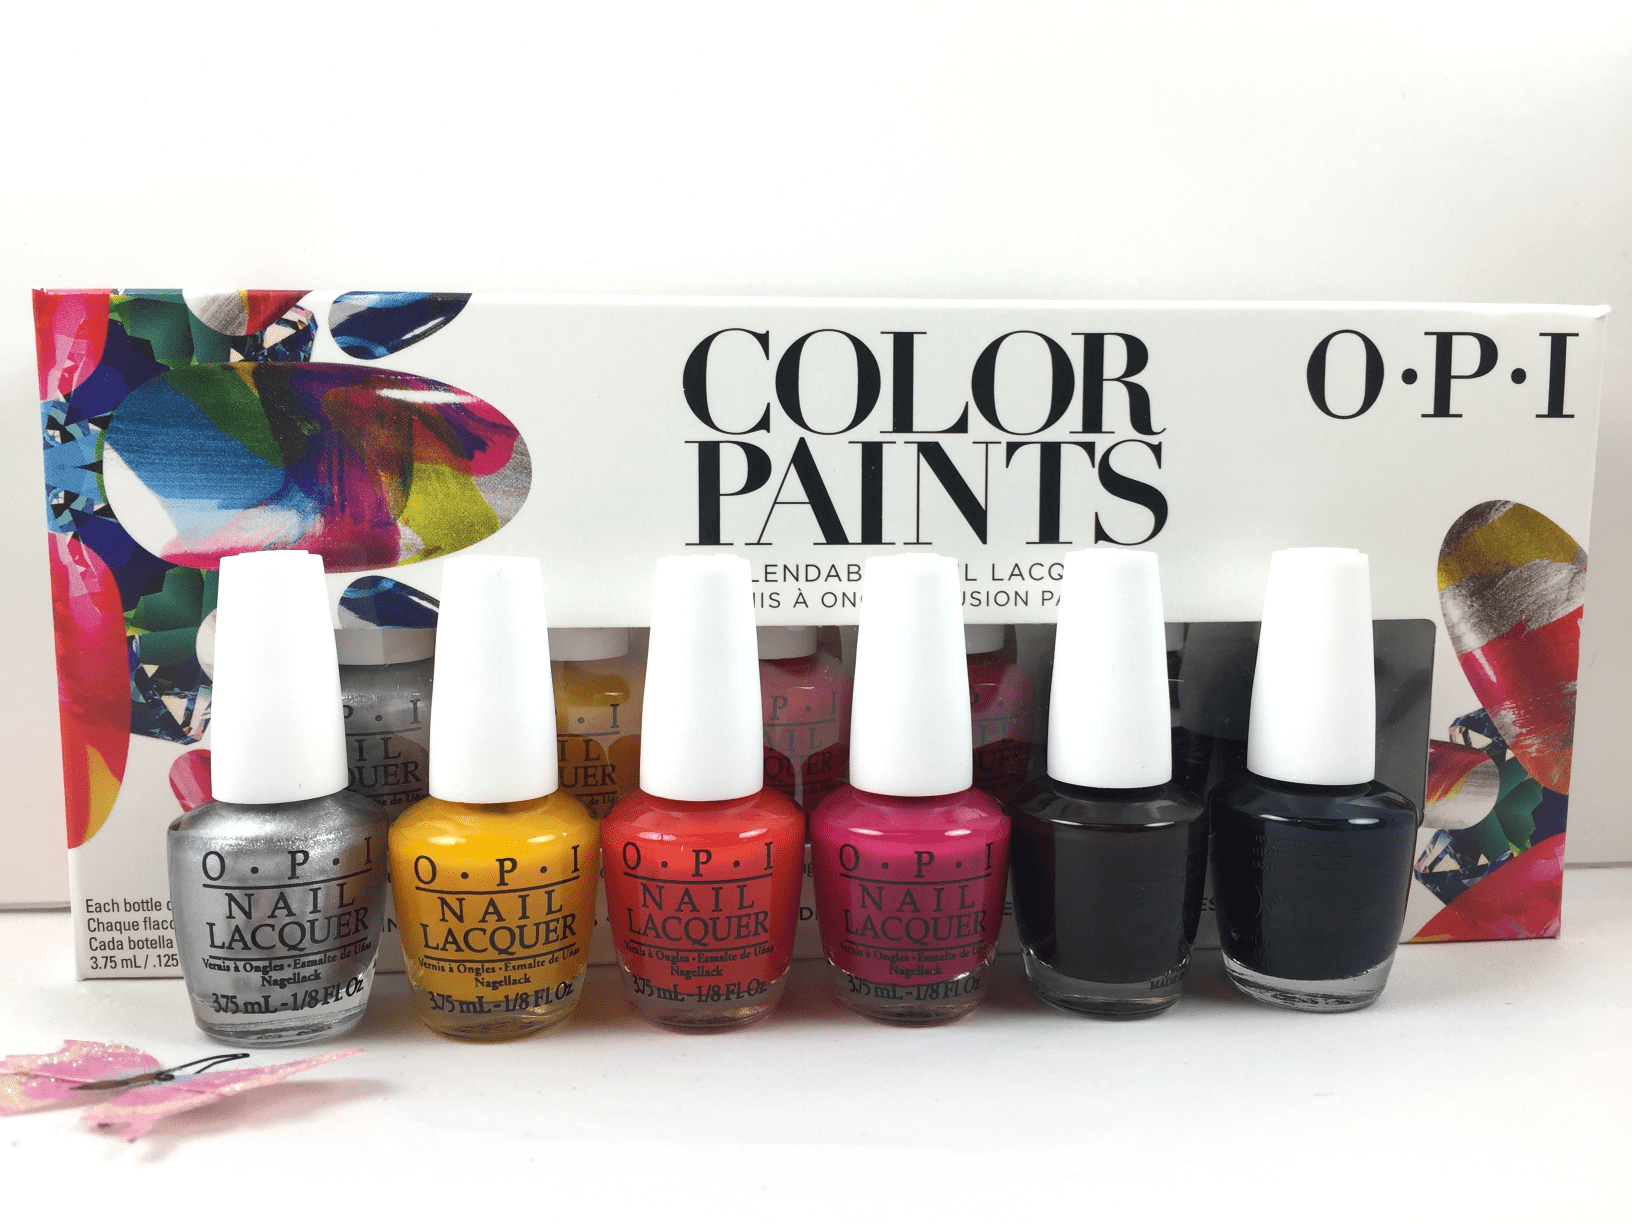 Opi Nail Lacquer Mini Set Color Paints